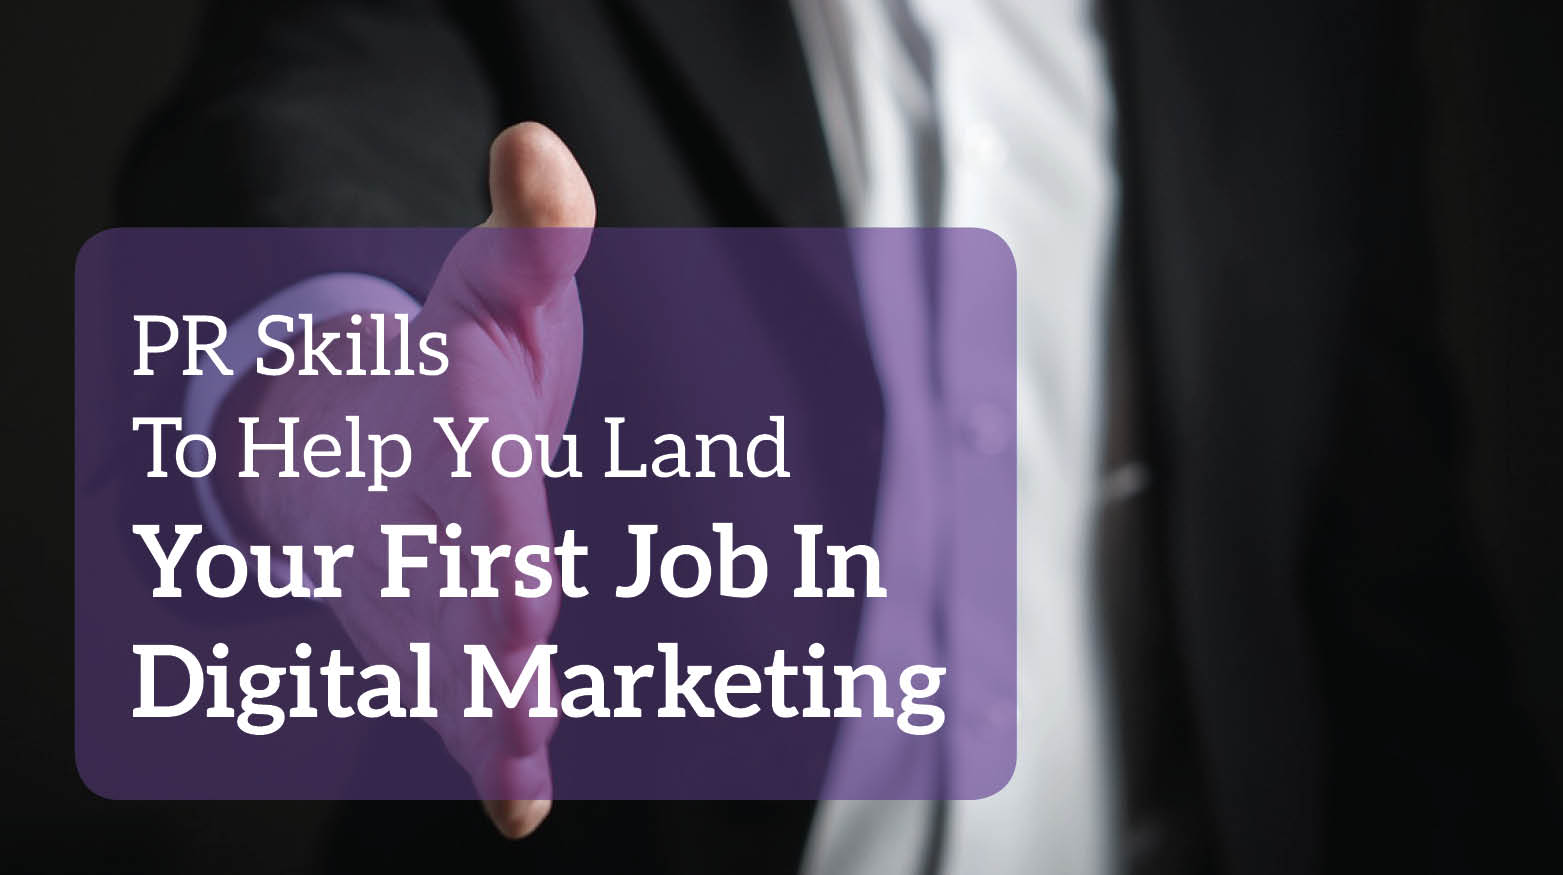 To Help You Land Your First Job in Digital Marketing